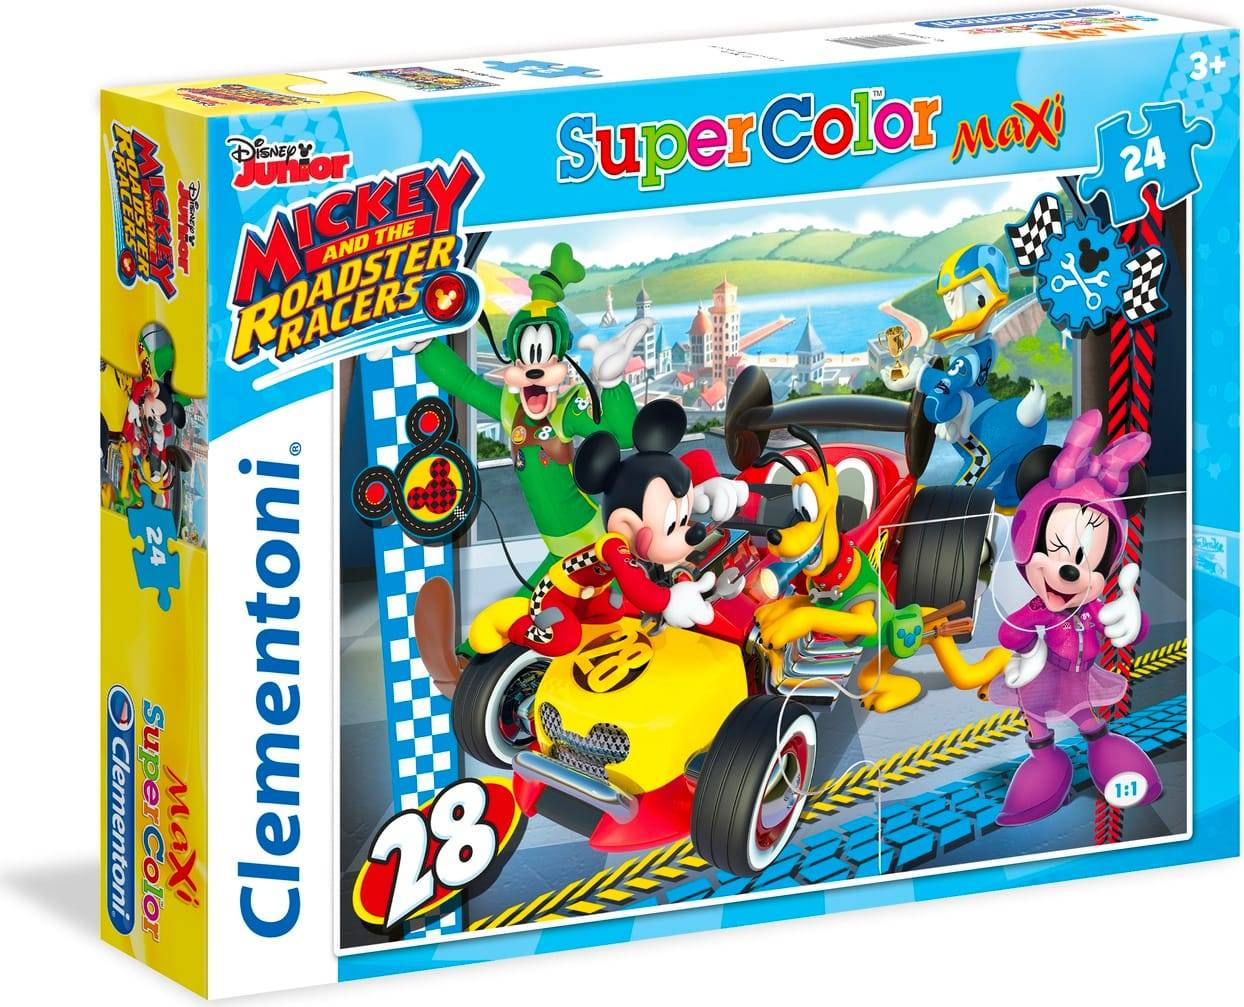 clementoni 24481 Mickey Roadster Racers - 24481